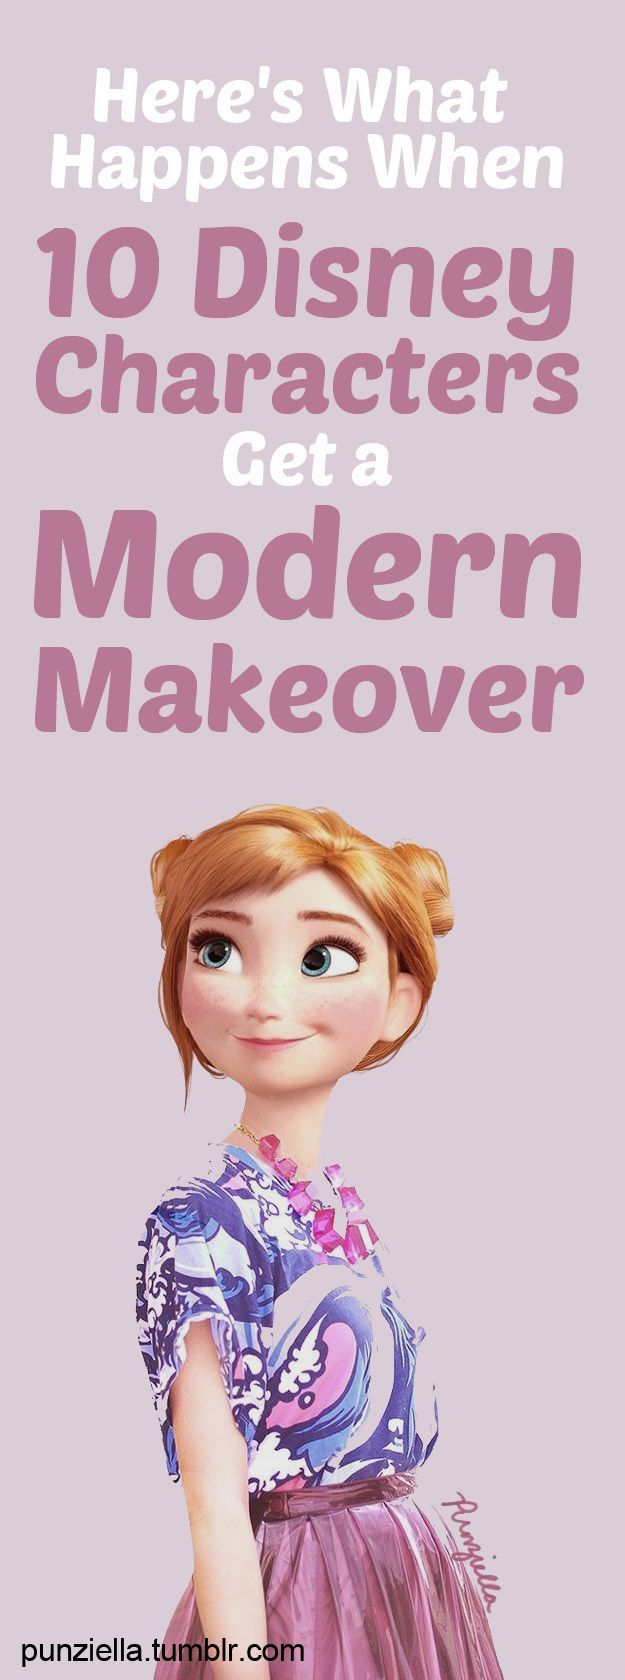 My kids had so much fun looking at these! disney characters #disney